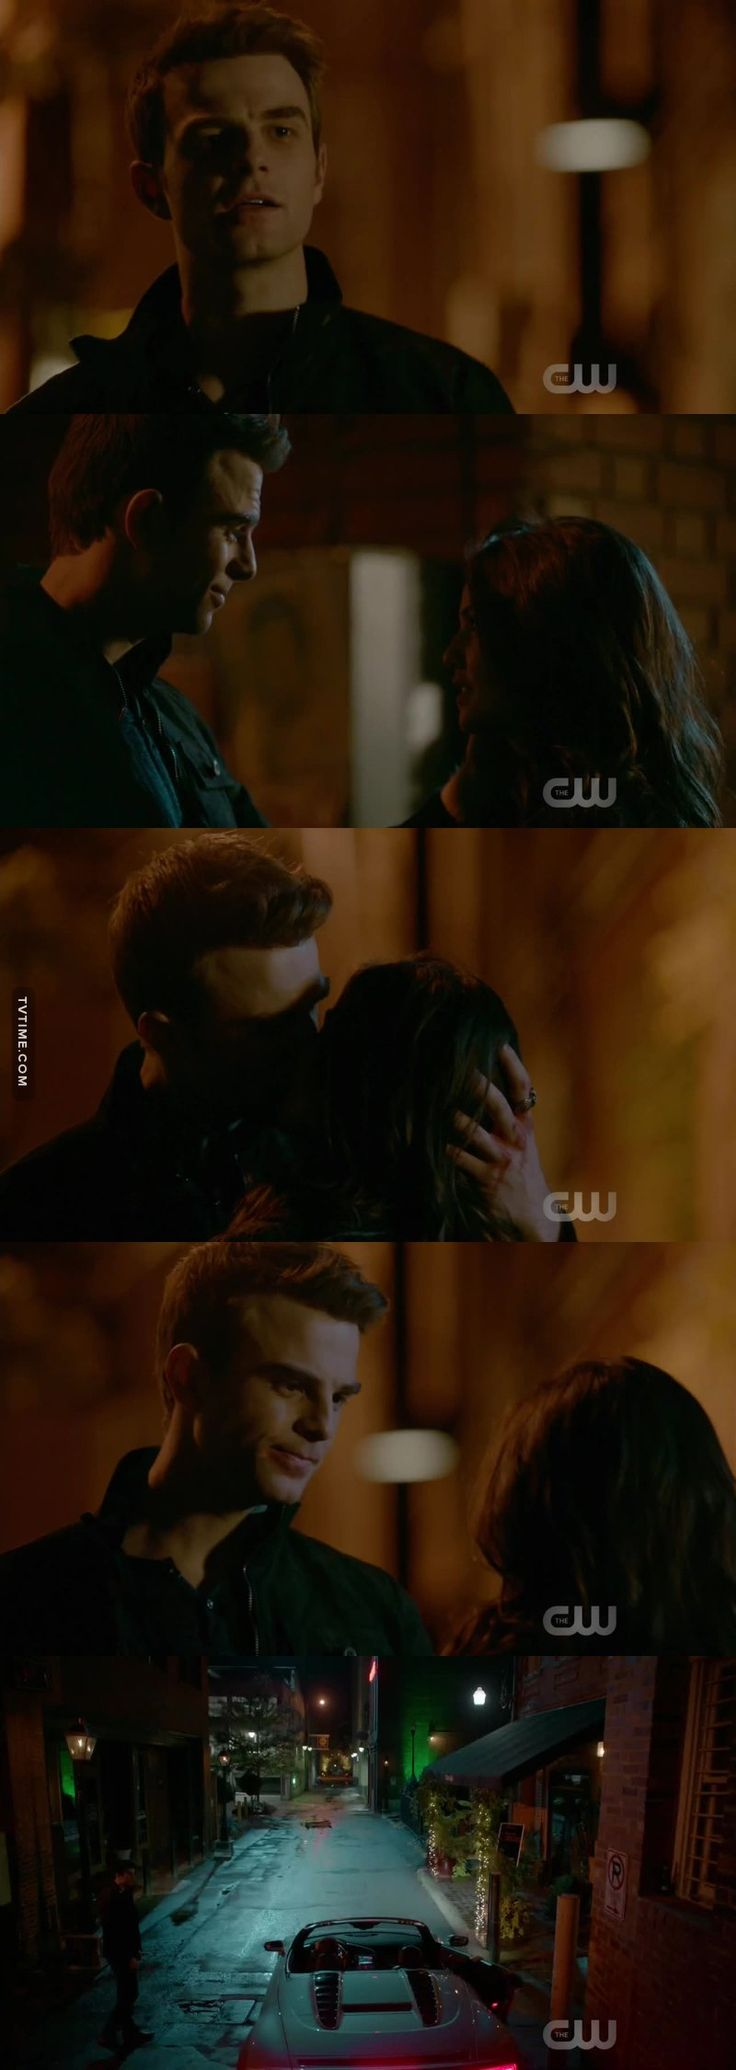 "#TheOriginals 4x11 ""A Spirit Here That Won't Be Broken"" - Kol and Davina"